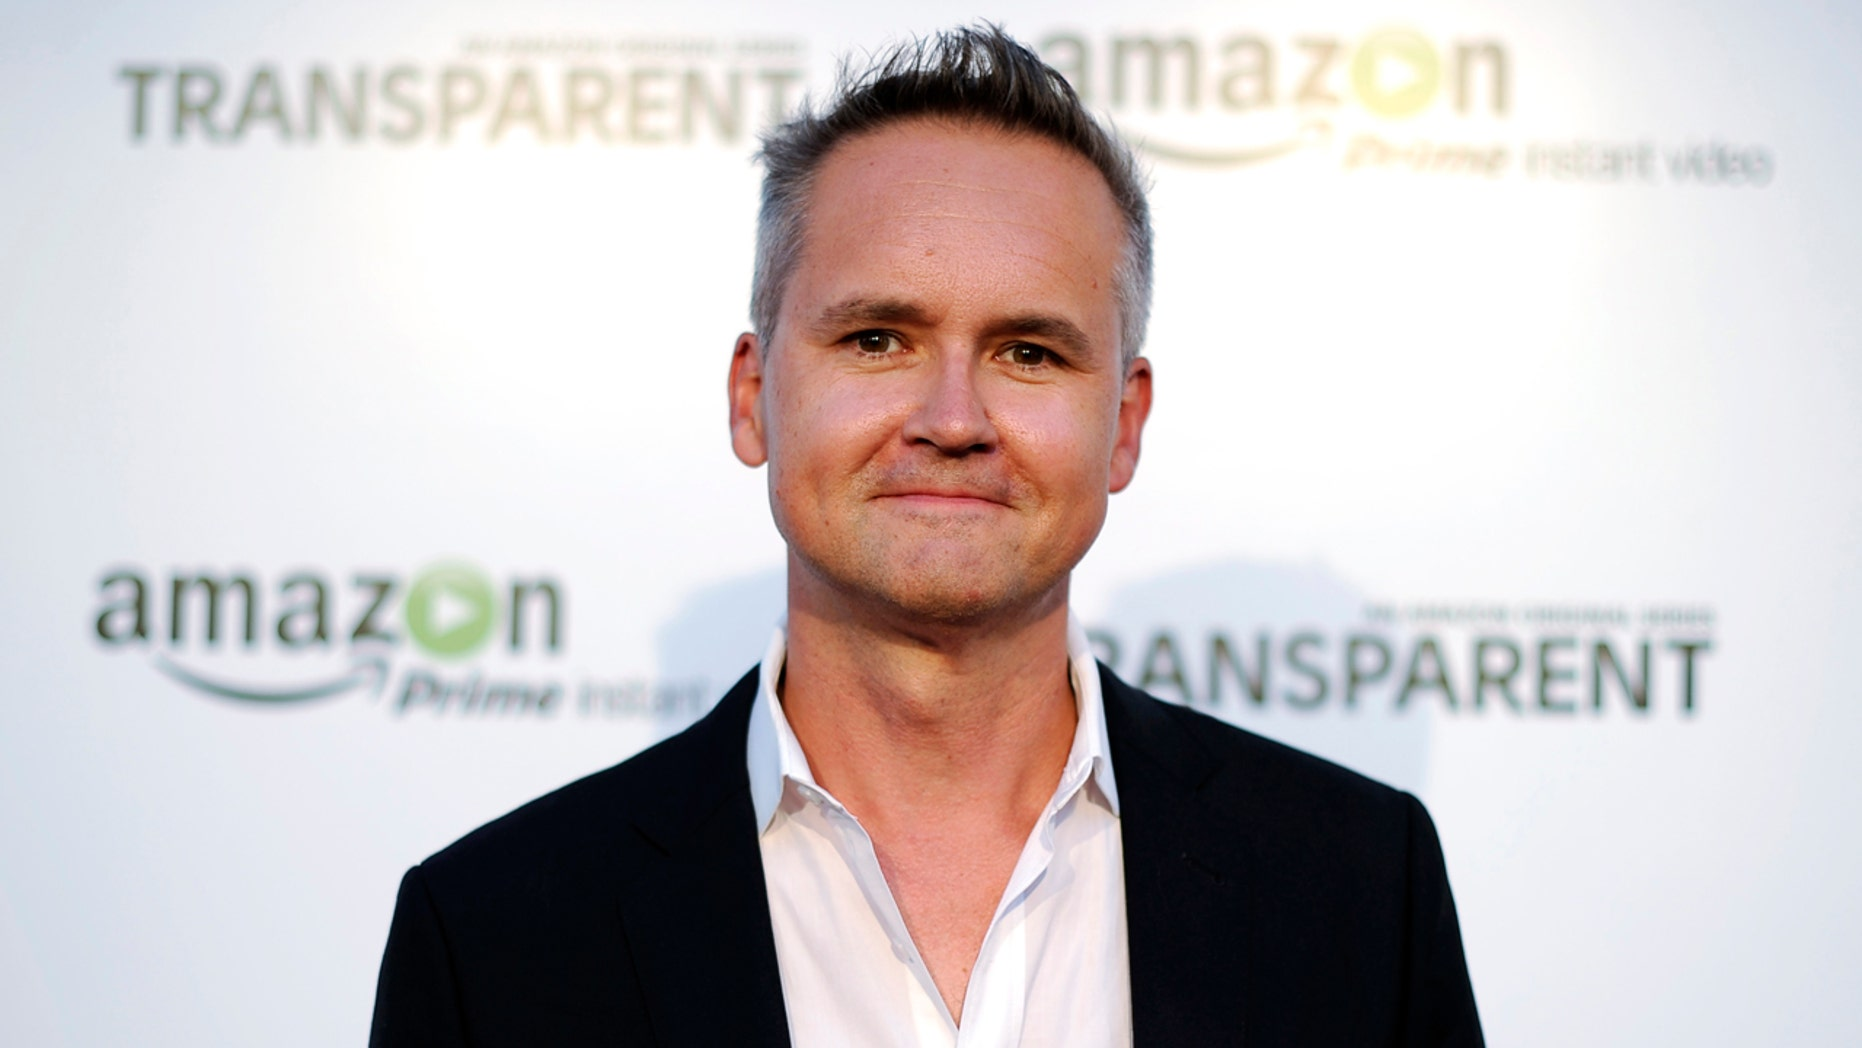 """Roy Price, director of Amazon Studios, during Amazon's premiere screening of the TV series """"Transparent"""" at the Ace Hotel in downtown Los Angeles, September 15, 2014."""